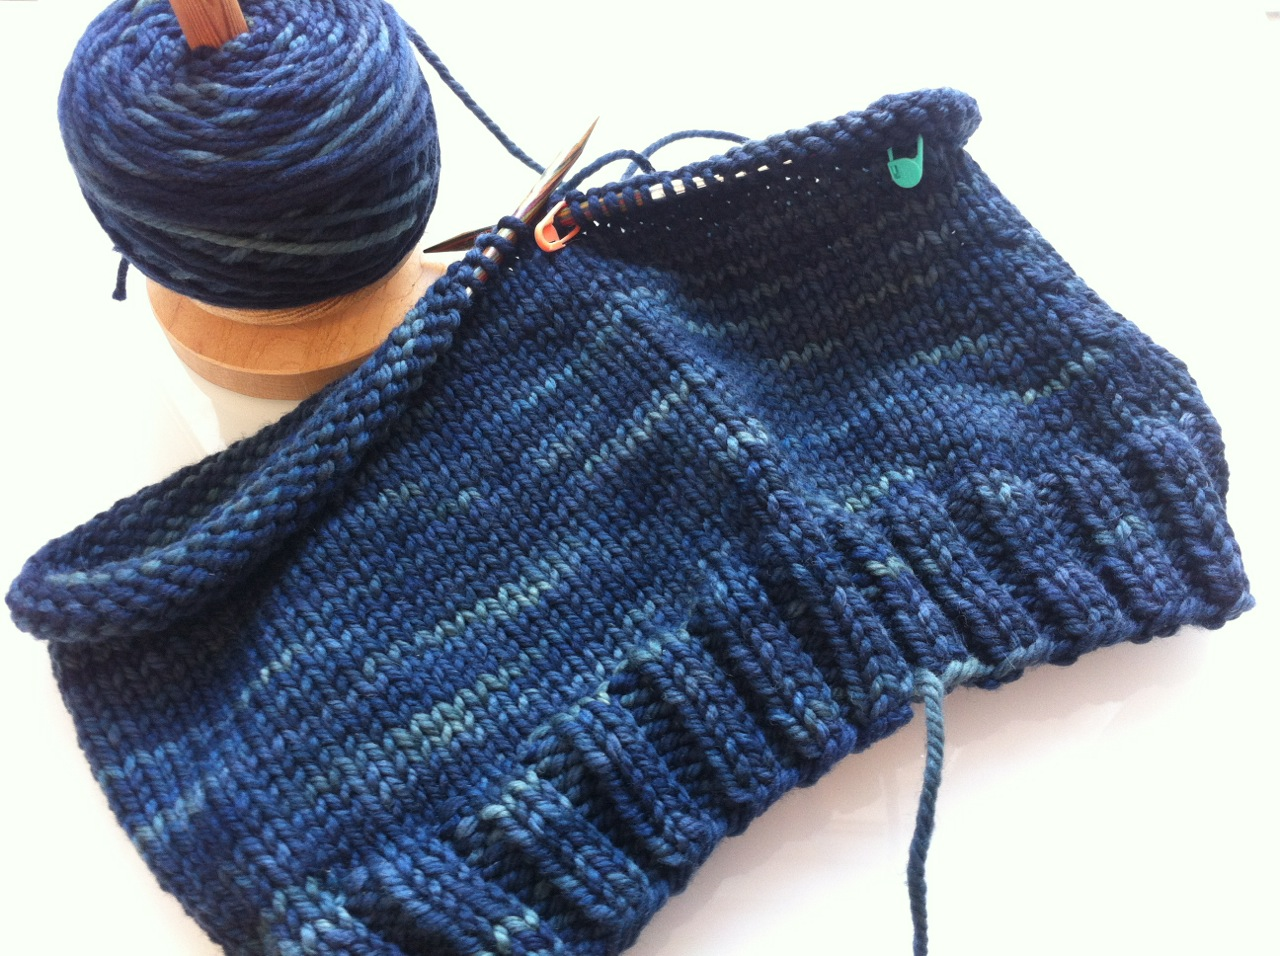 See what I mean about working up fast? That's the second skein already.